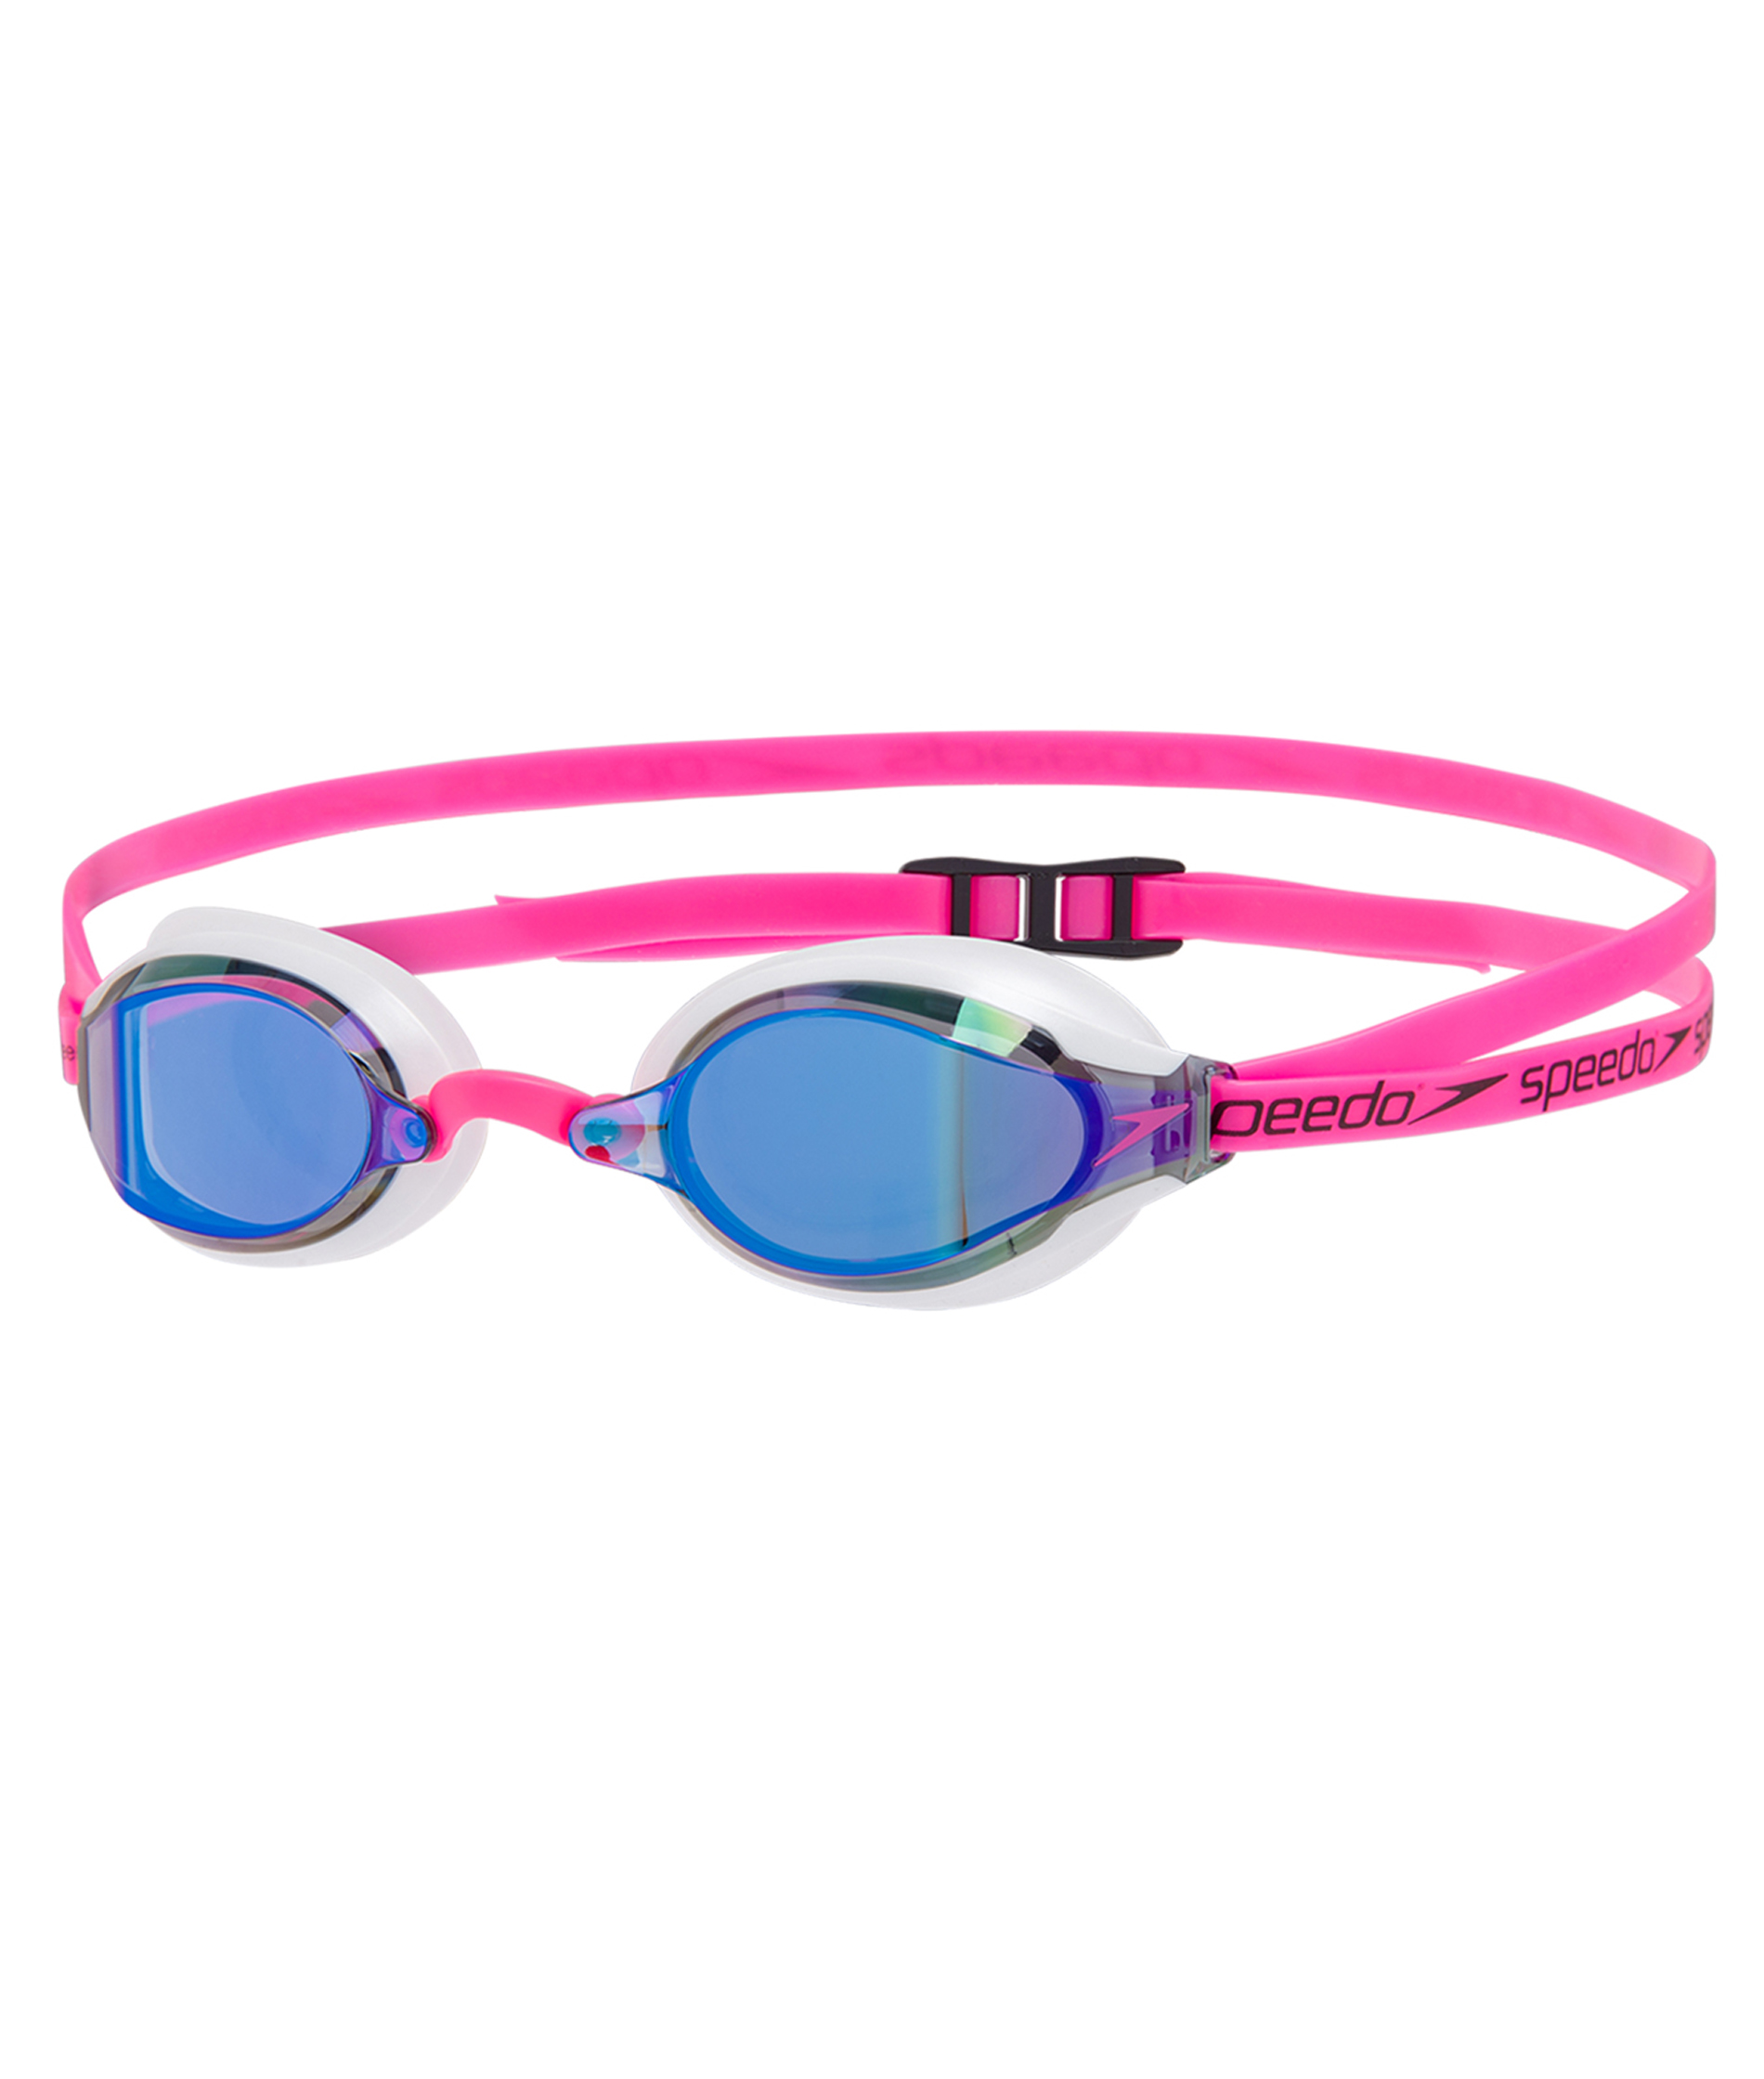 Speedo Fastskin Speedsocket 2 Mirror Goggle - Pink/Blue